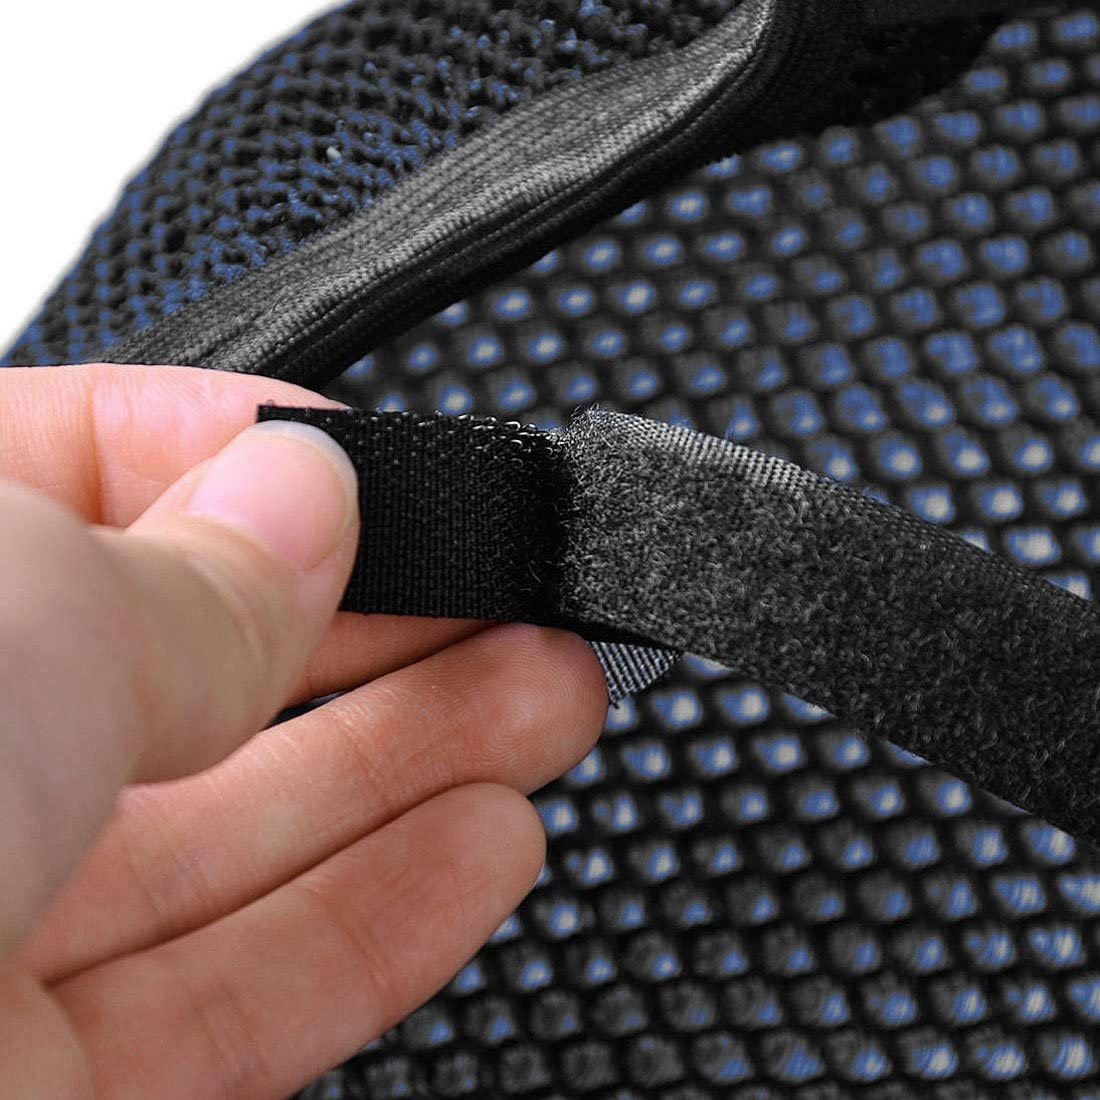 uxcell XL Heat Resistant Breathable Seat Saddle 3D Mesh Cover Black Blue for Motorcycle